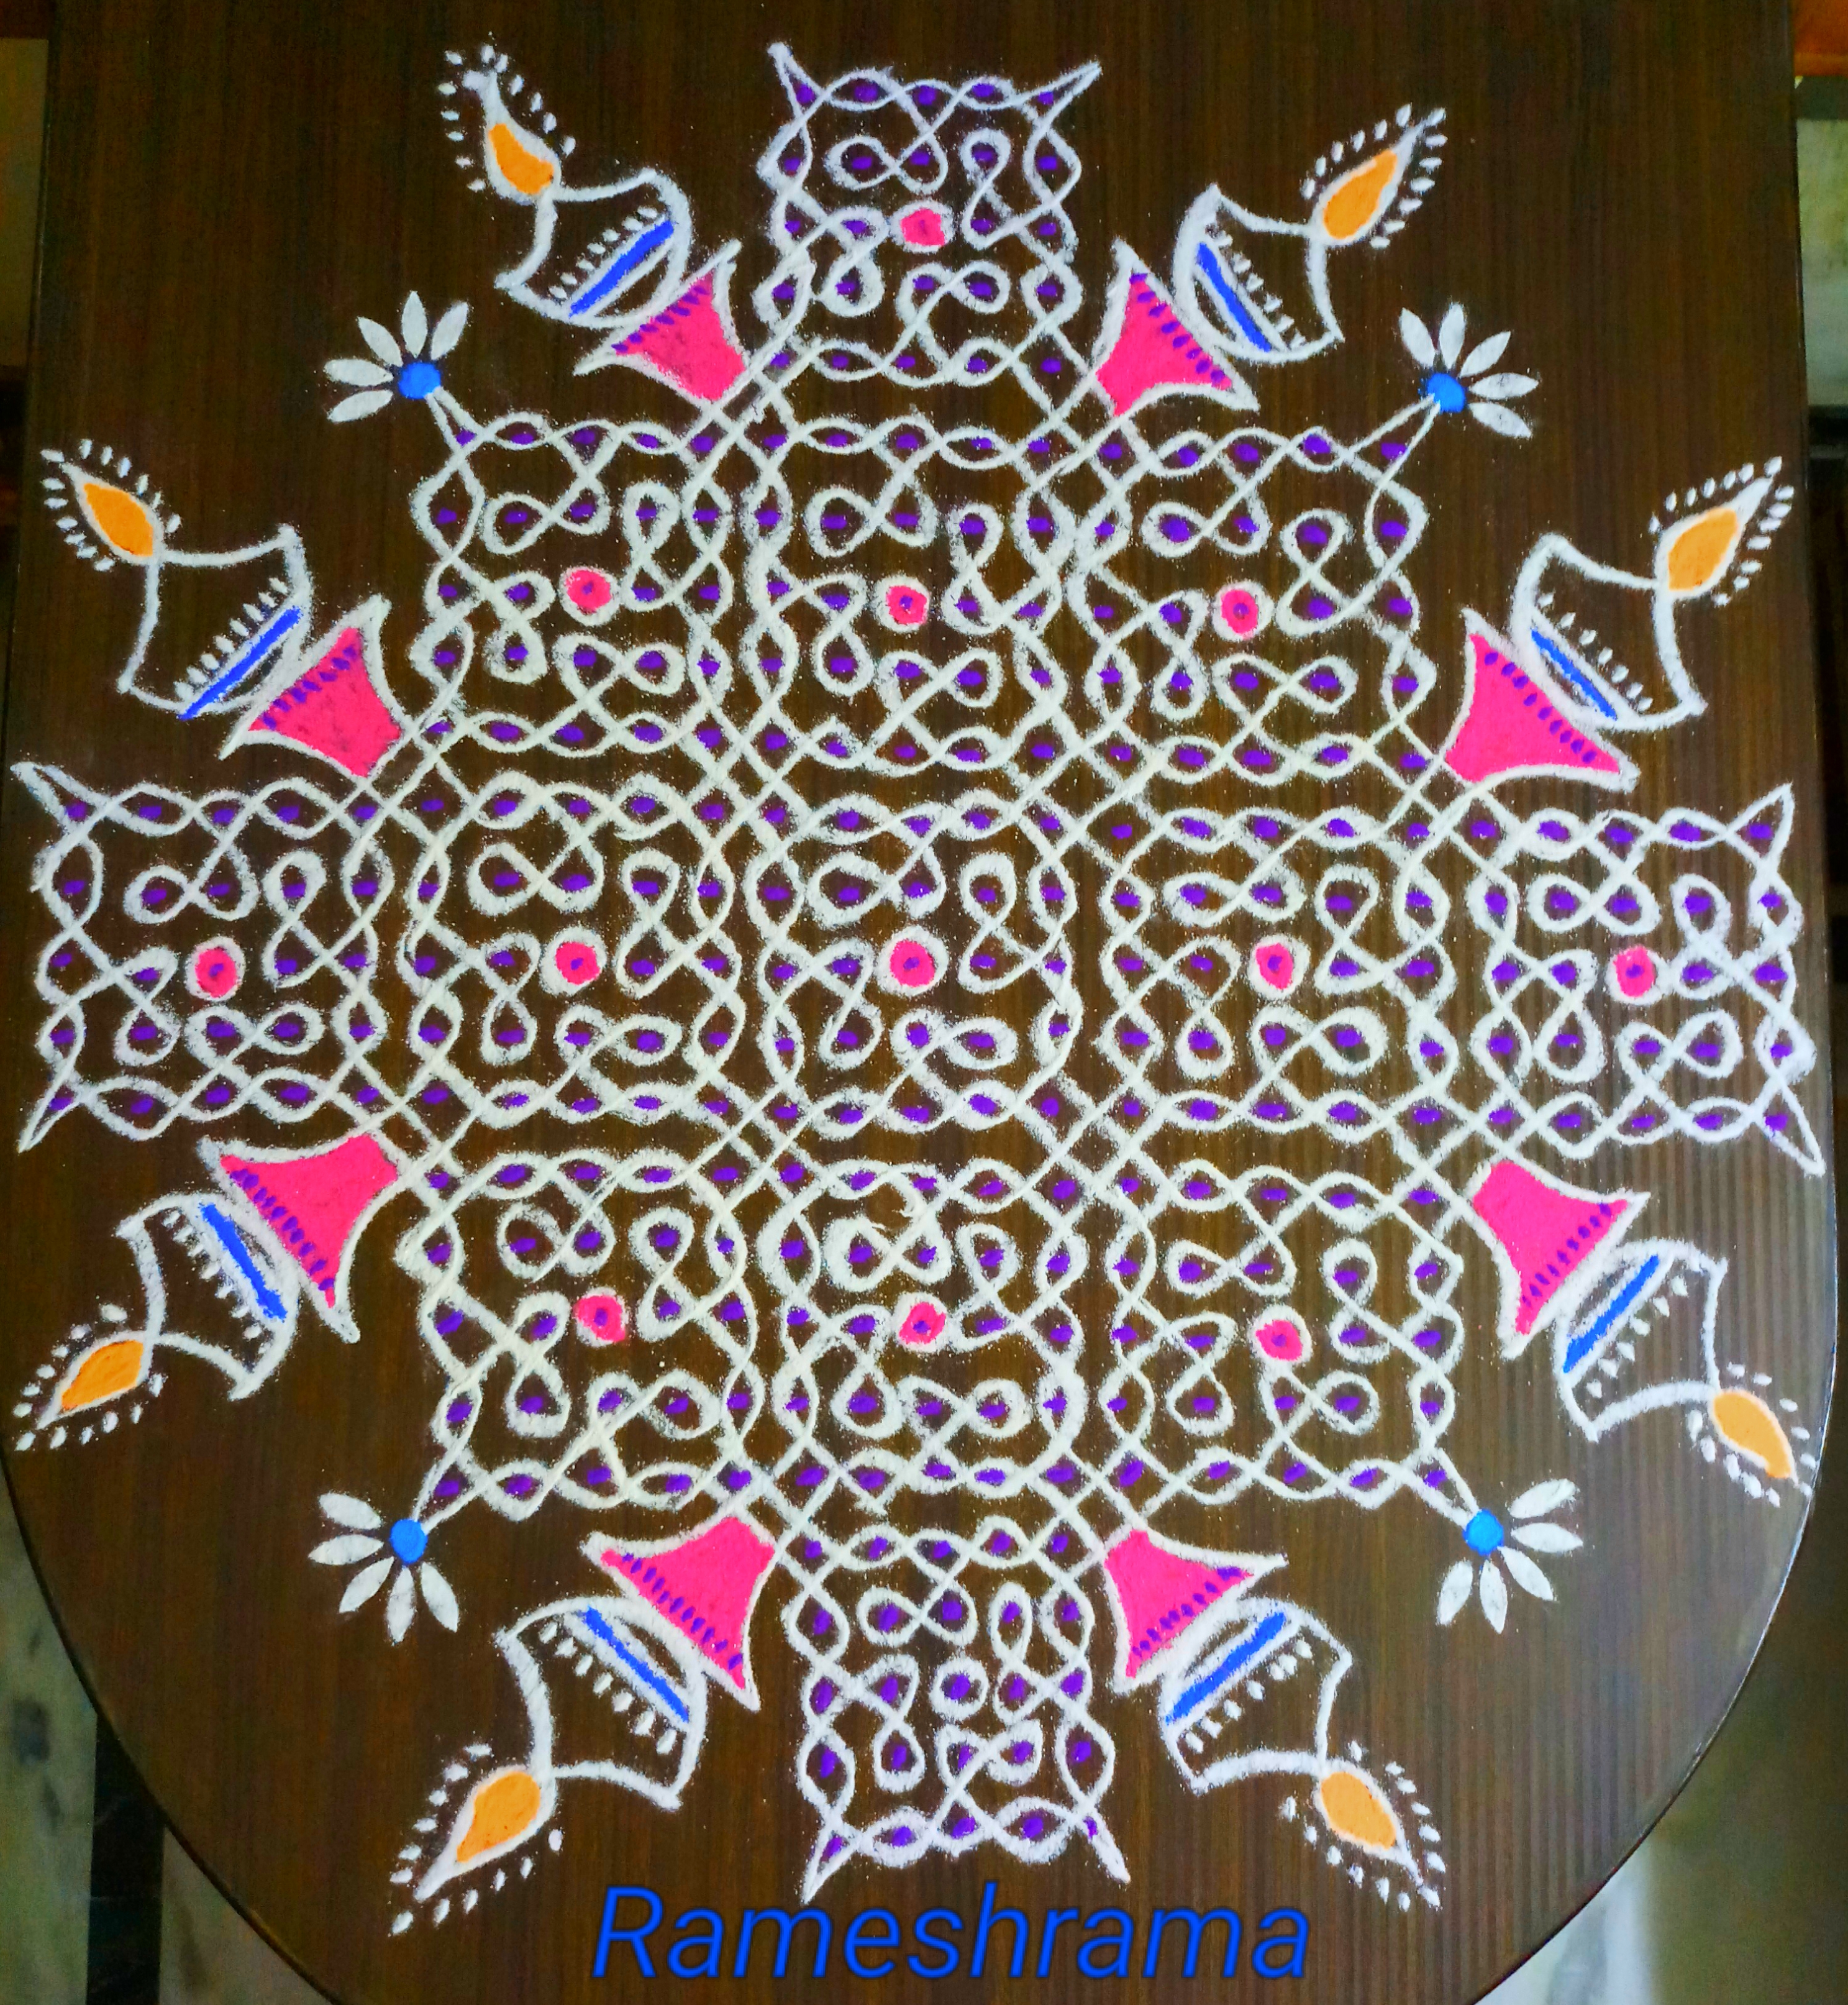 Sikku kolam with 25 dots || Big Kolam for Kolam ContestSikku kolam with 25 dots || Big Kolam for Kolam Contest